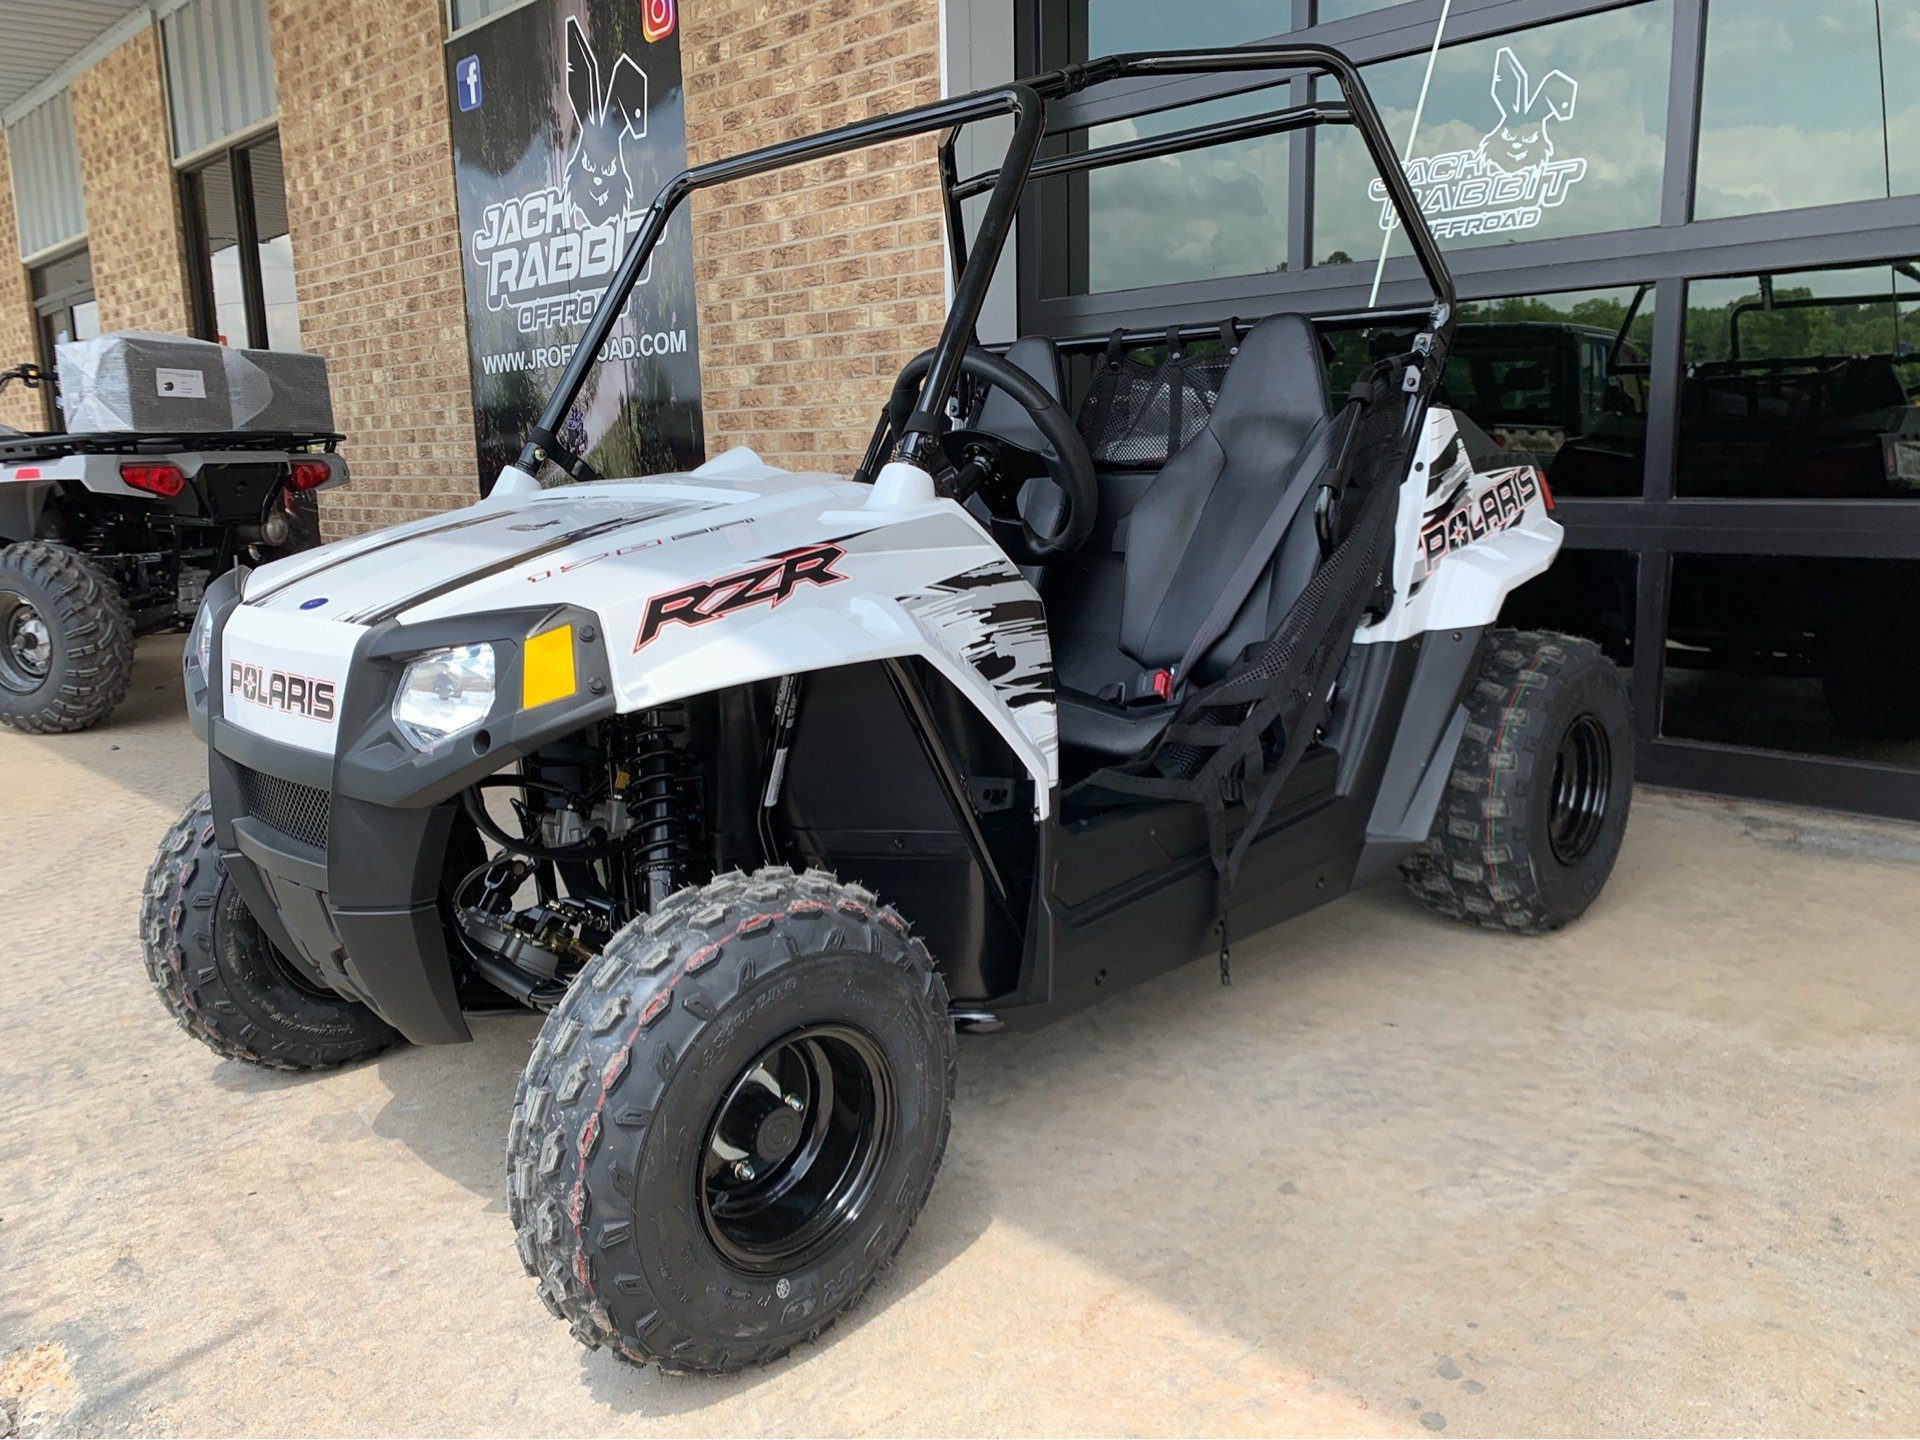 9f70d6fdaea New 2019 Polaris RZR 170 EFI Utility Vehicles in Marshall, TX ...